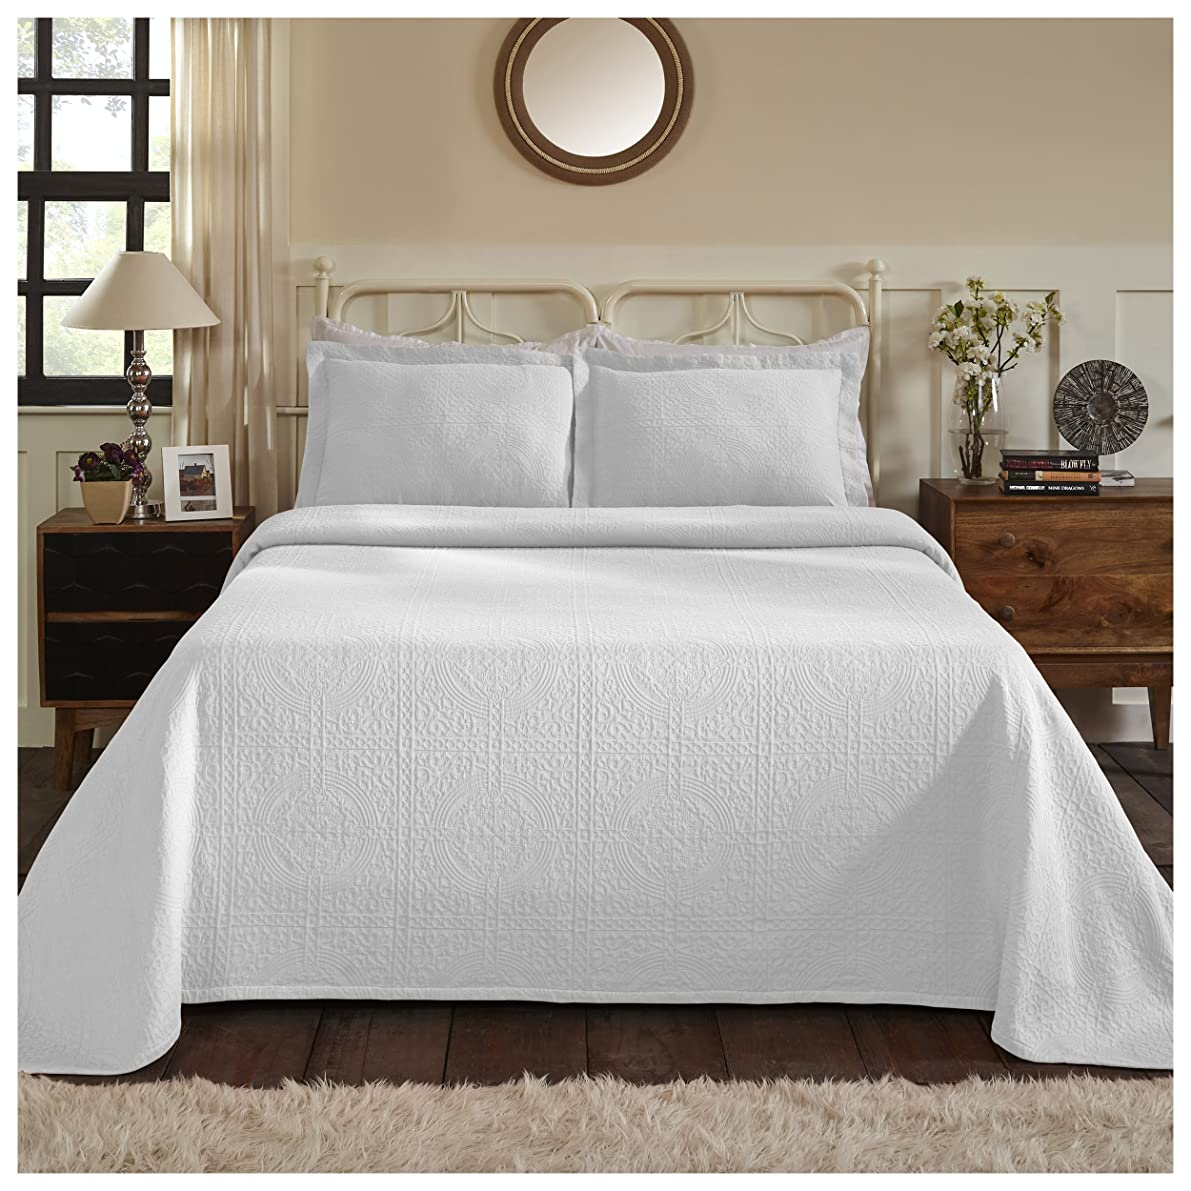 Superior 100% Cotton Medallion Bedspread with Shams, All-Season Premium Cotton Matelassé Jacquard Bedding, Quilted-look Floral Medallion Pattern - Queen, White